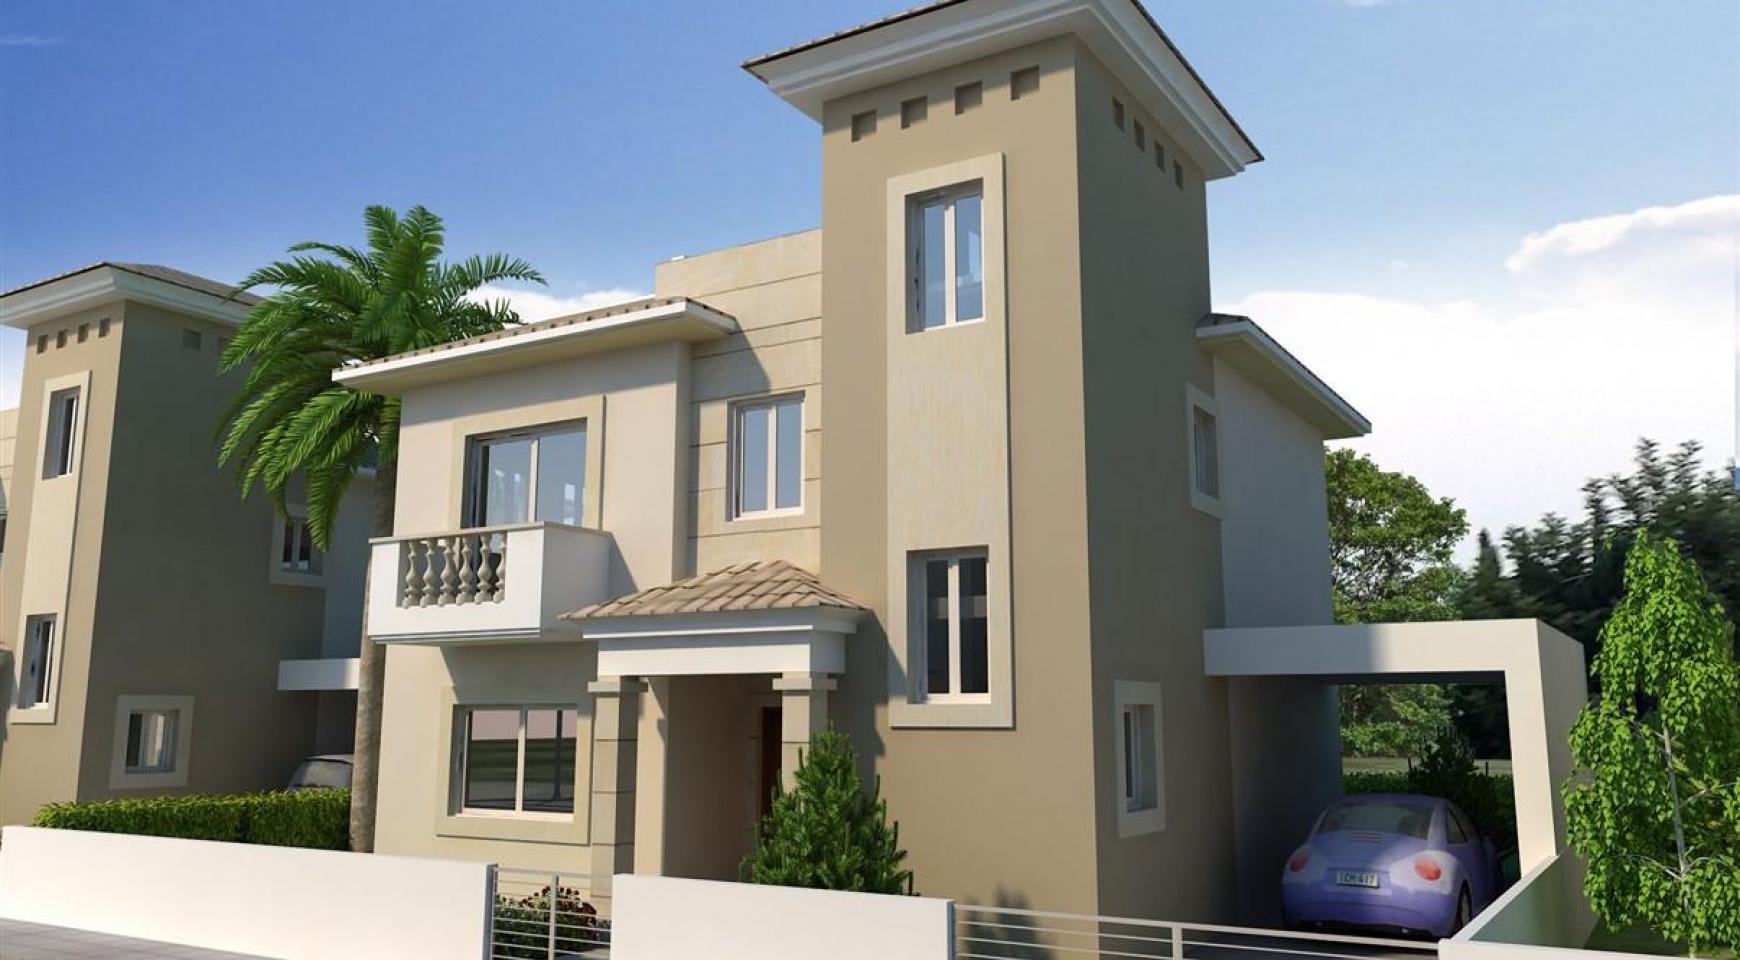 3 Bedroom Villa within a New Project - 15